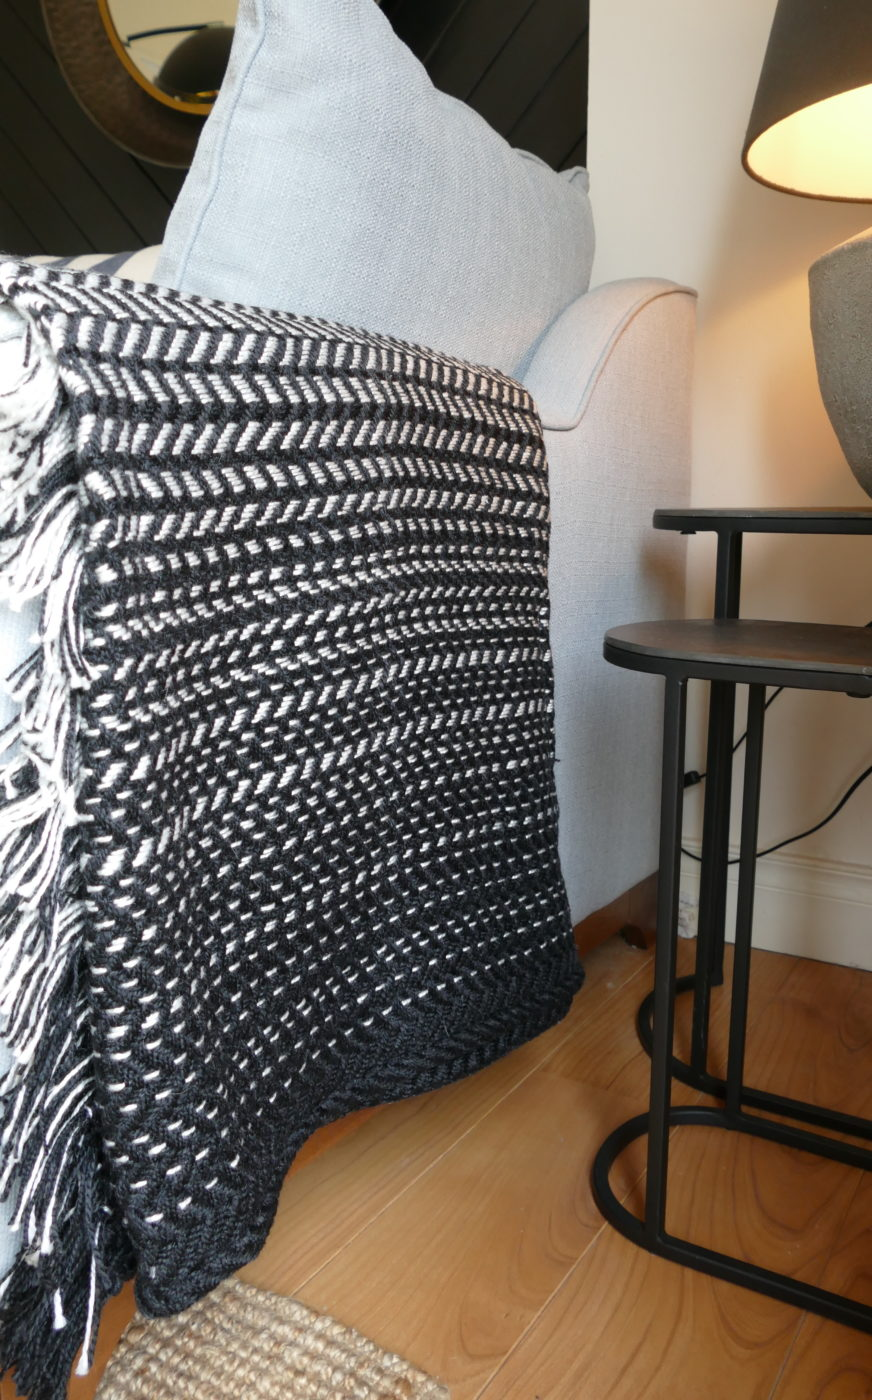 woven black and white blanket on arm of couch